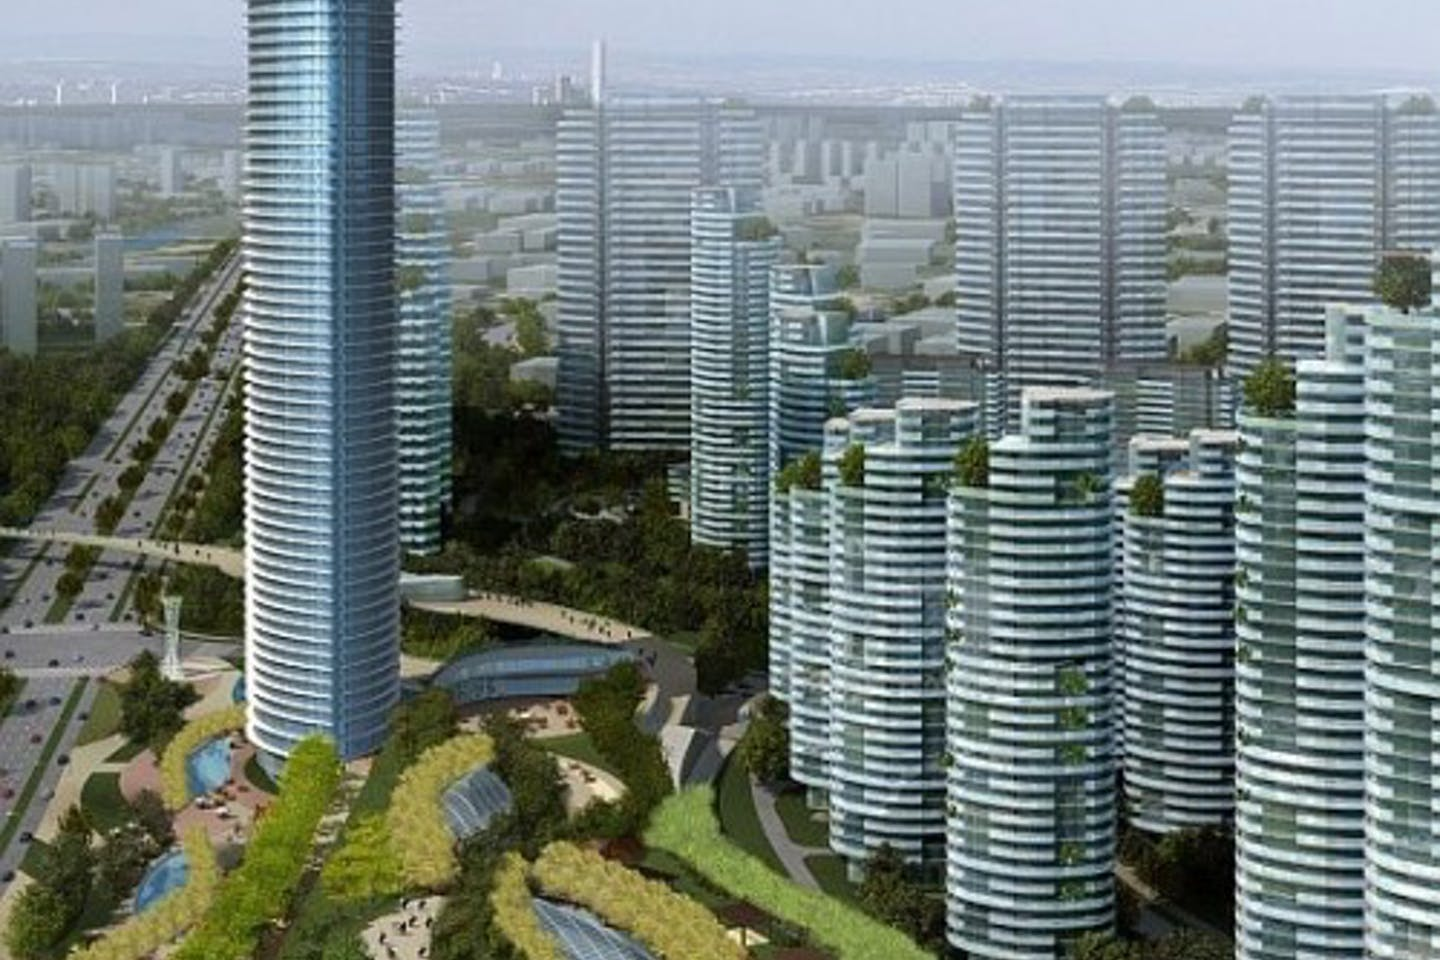 67566a7cf6sustainable-mixed-use-development-for-china_1_uX4iF_69-500x487